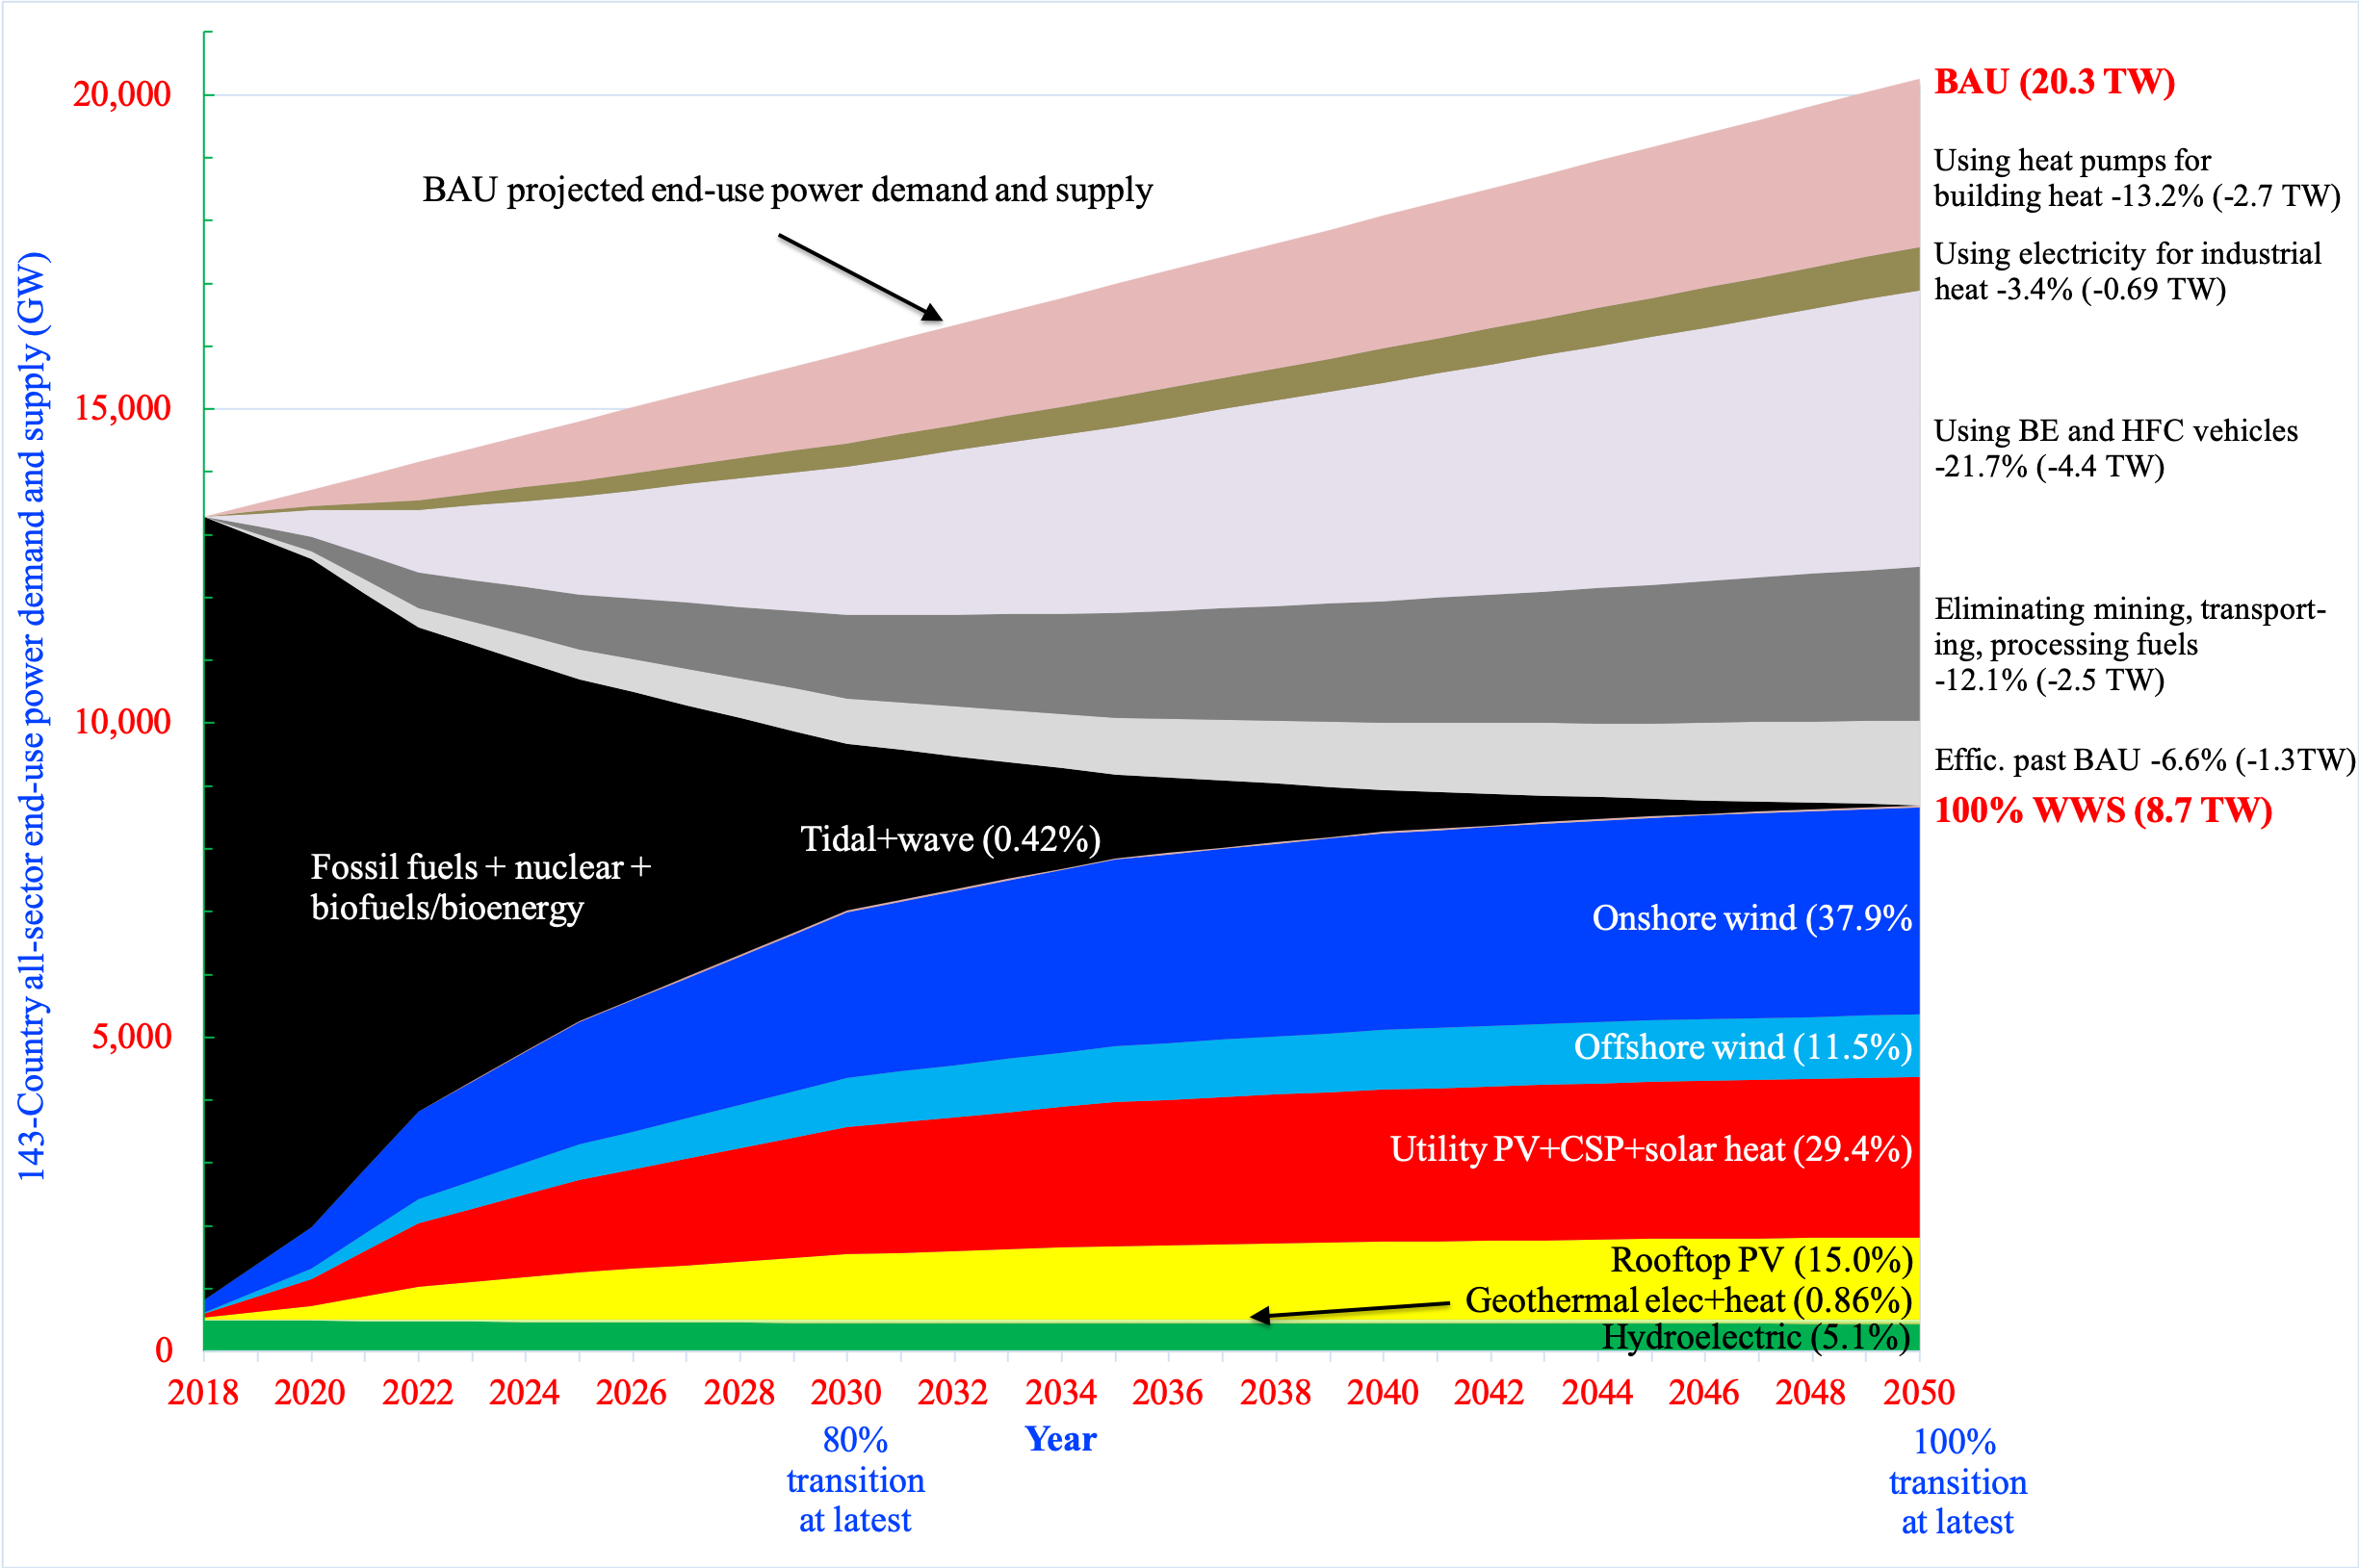 Timeline for Transition to 100% Wind-Water-Solar